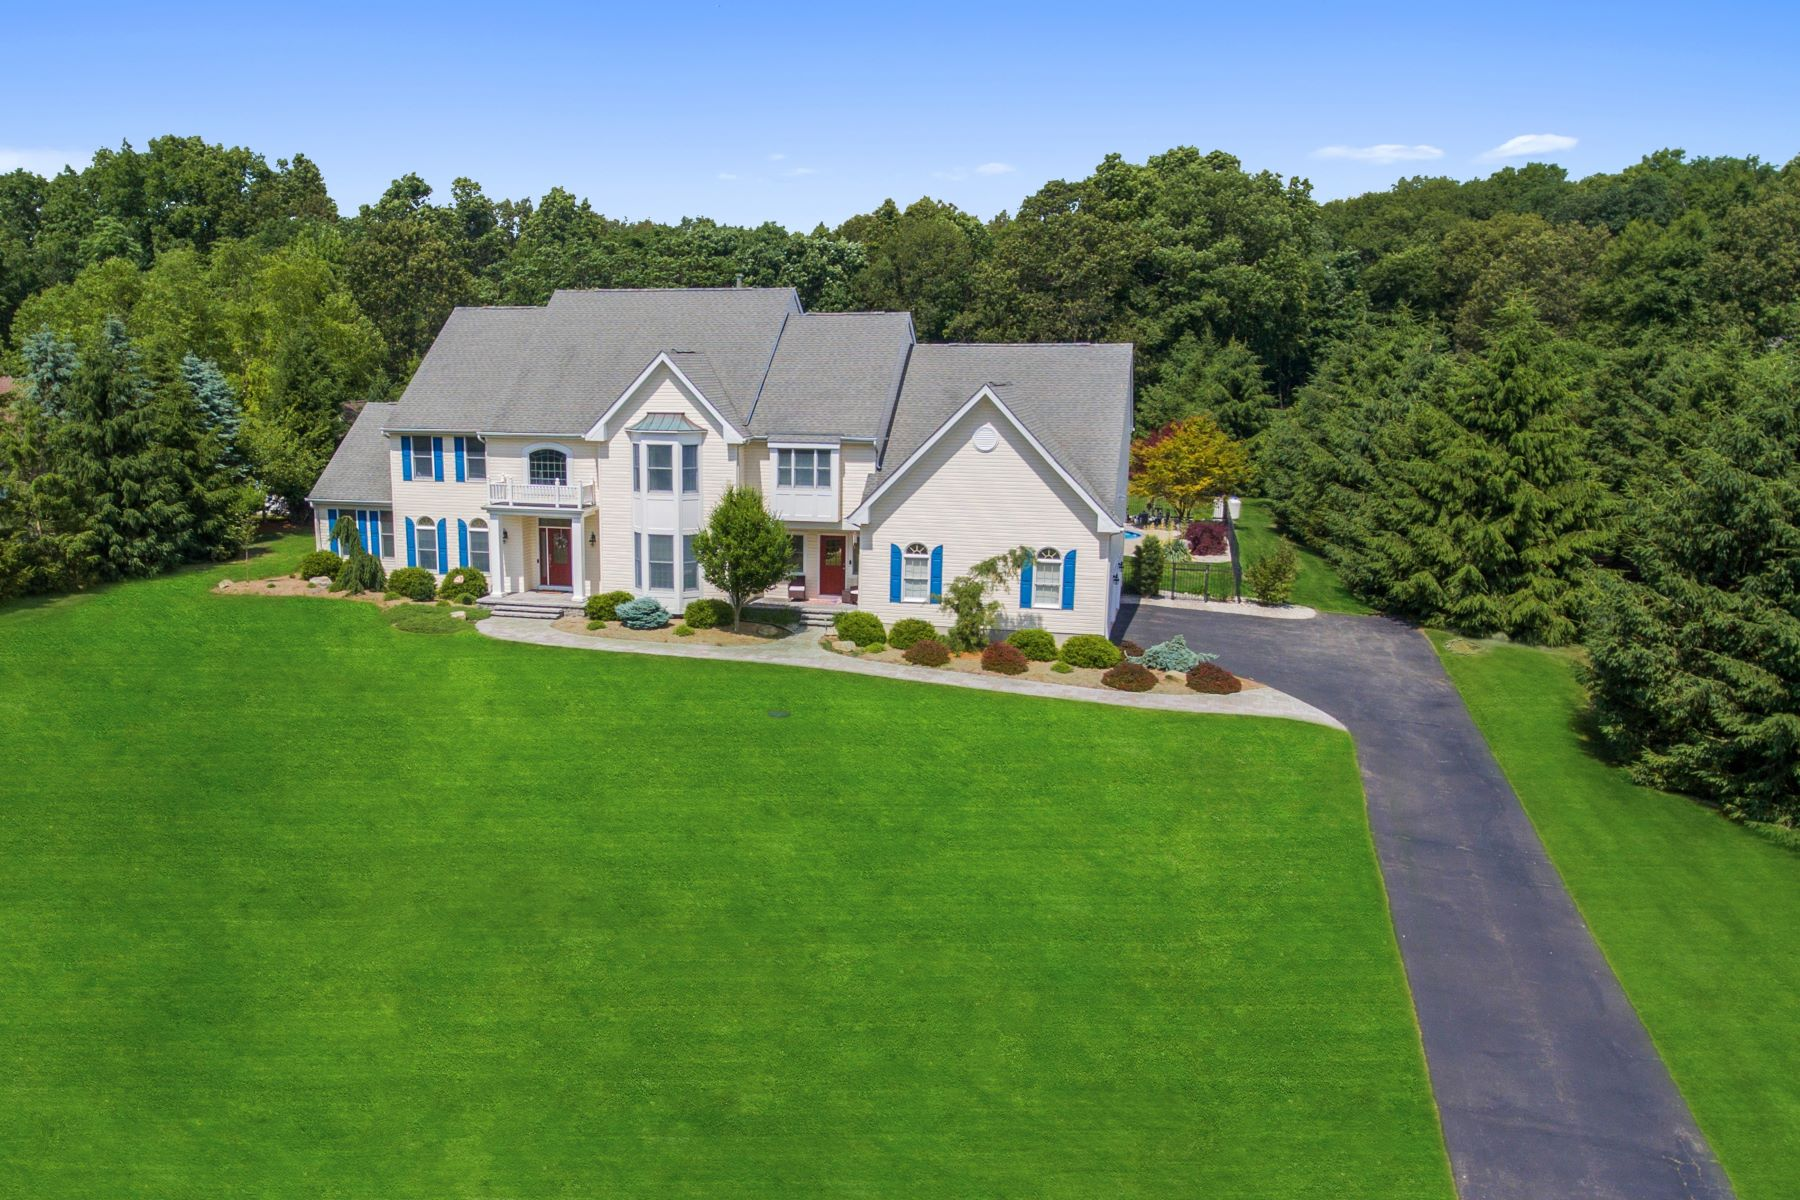 Single Family Homes for Active at An Oasis in Sought-After Grandview Estates 19 Harvest Lane Long Valley, New Jersey 07853 United States